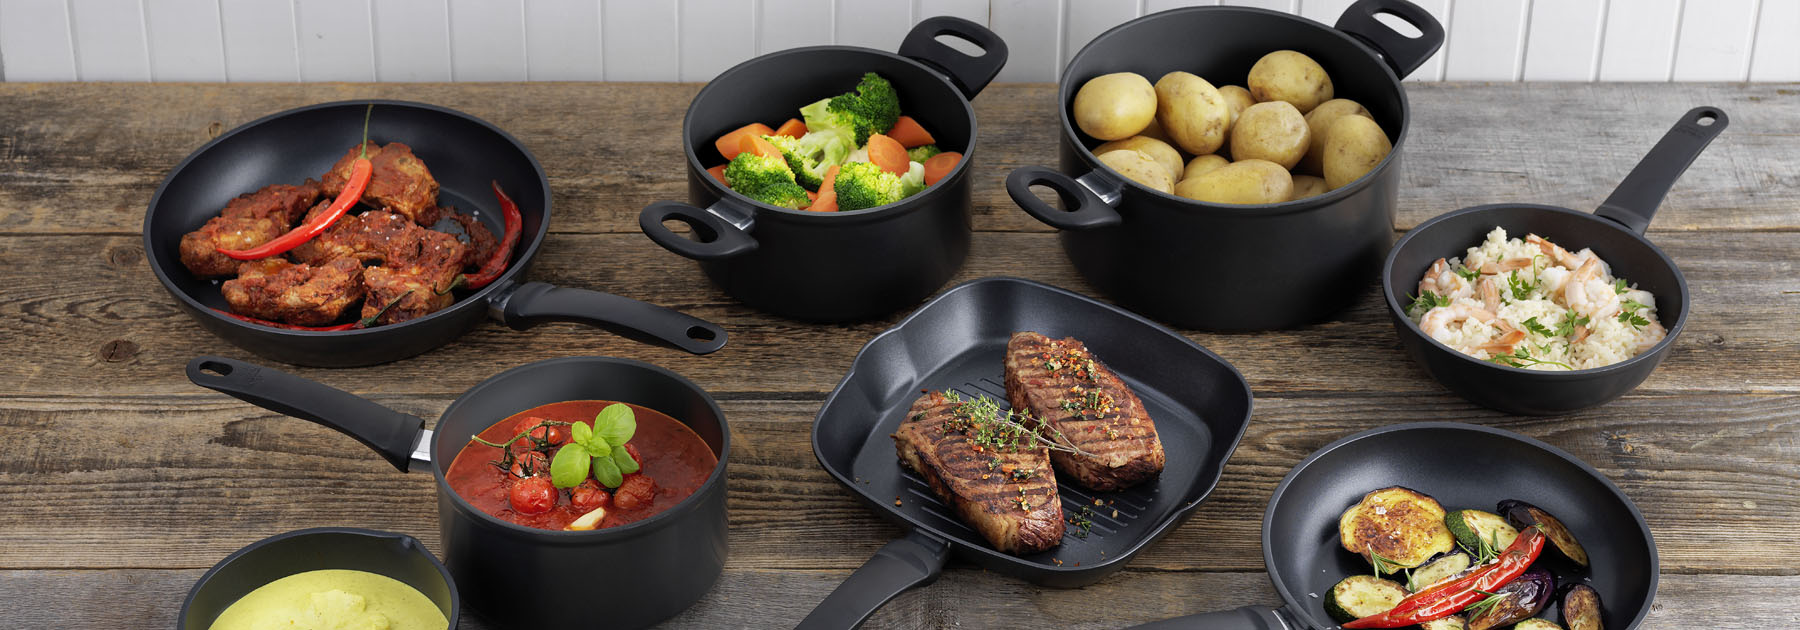 offers, promotions, discounts, cookware, frying, pans